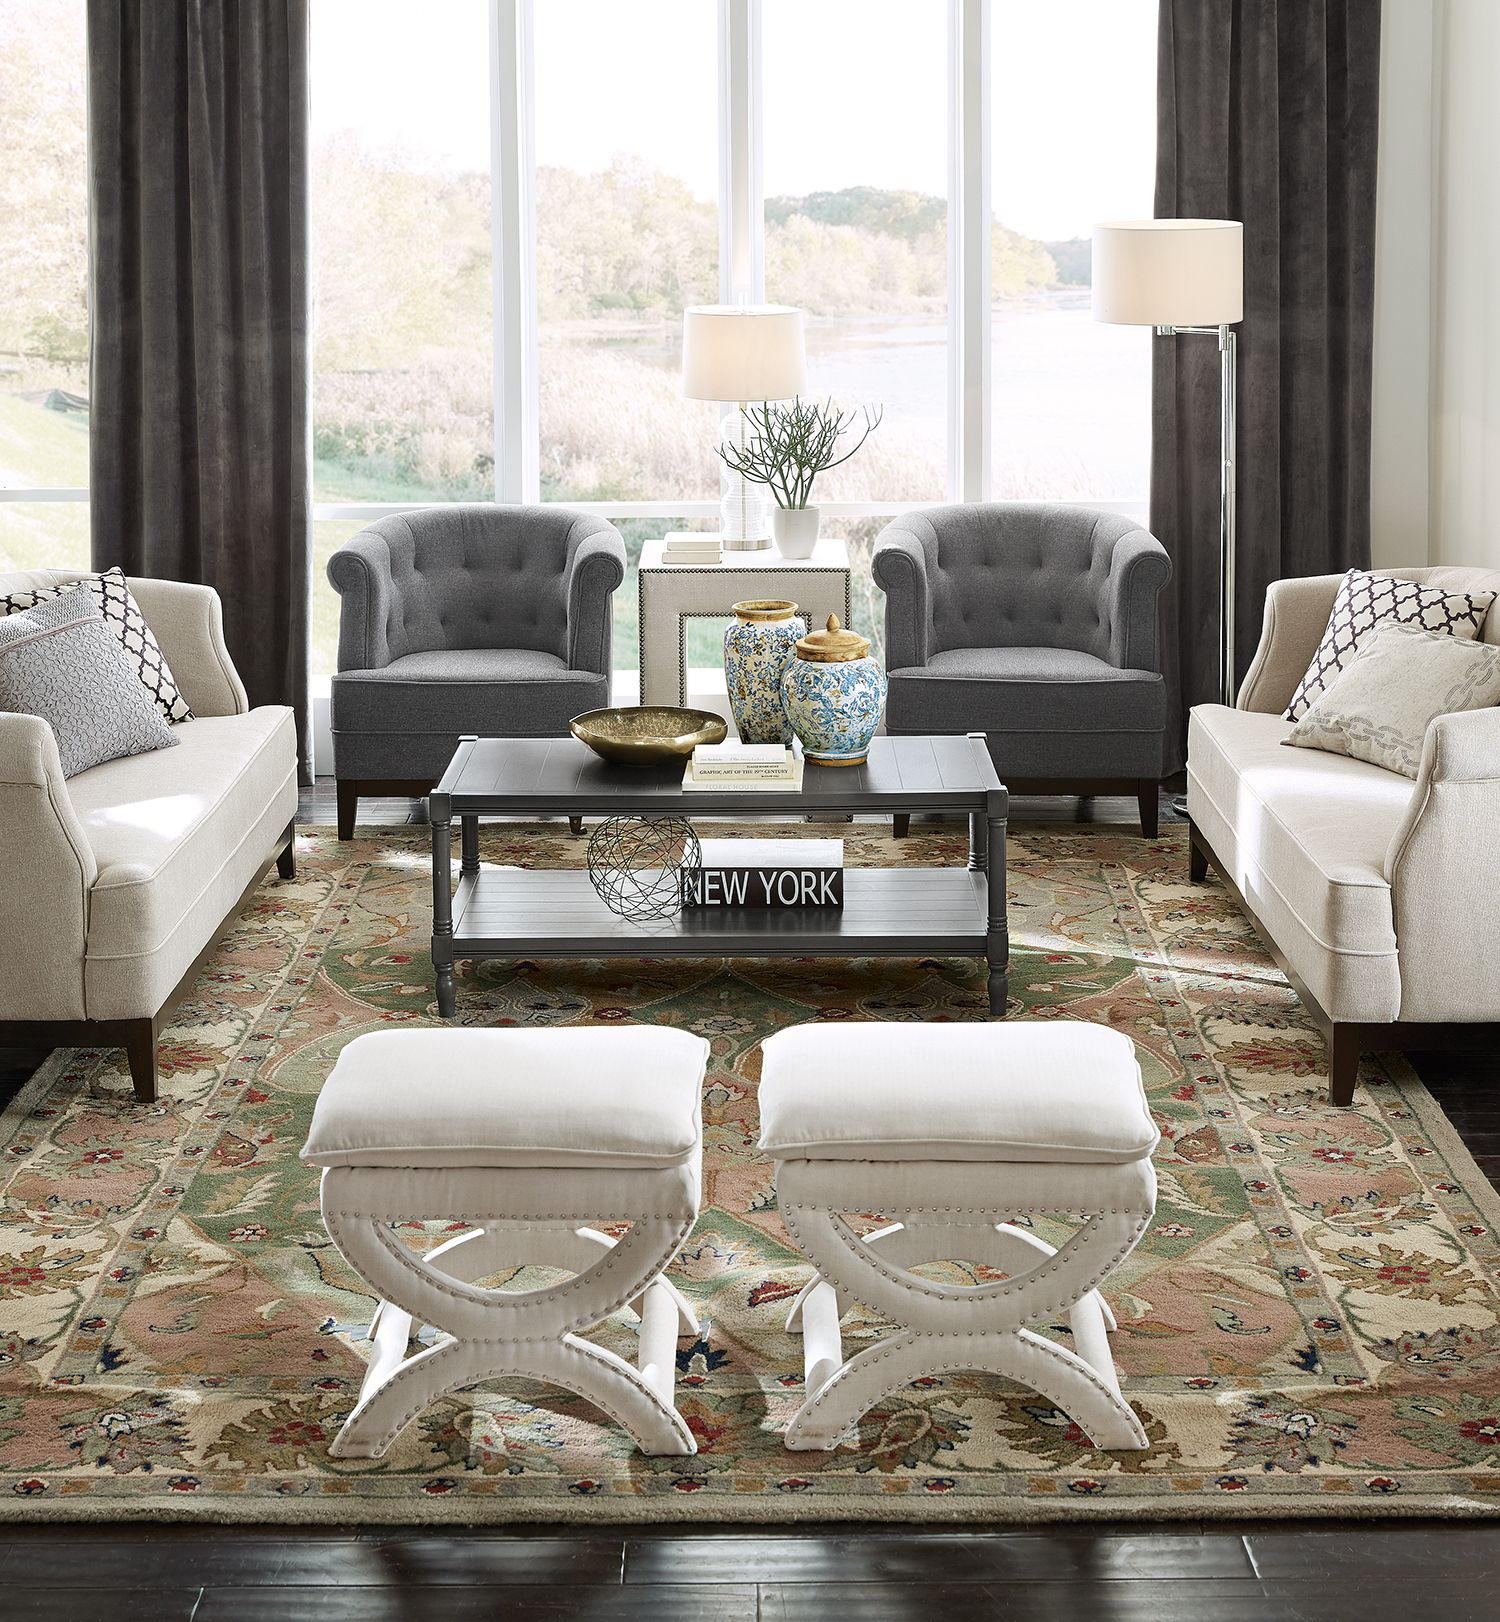 Create A Sophisticated Seating Arrangement With Neutrals And Grey